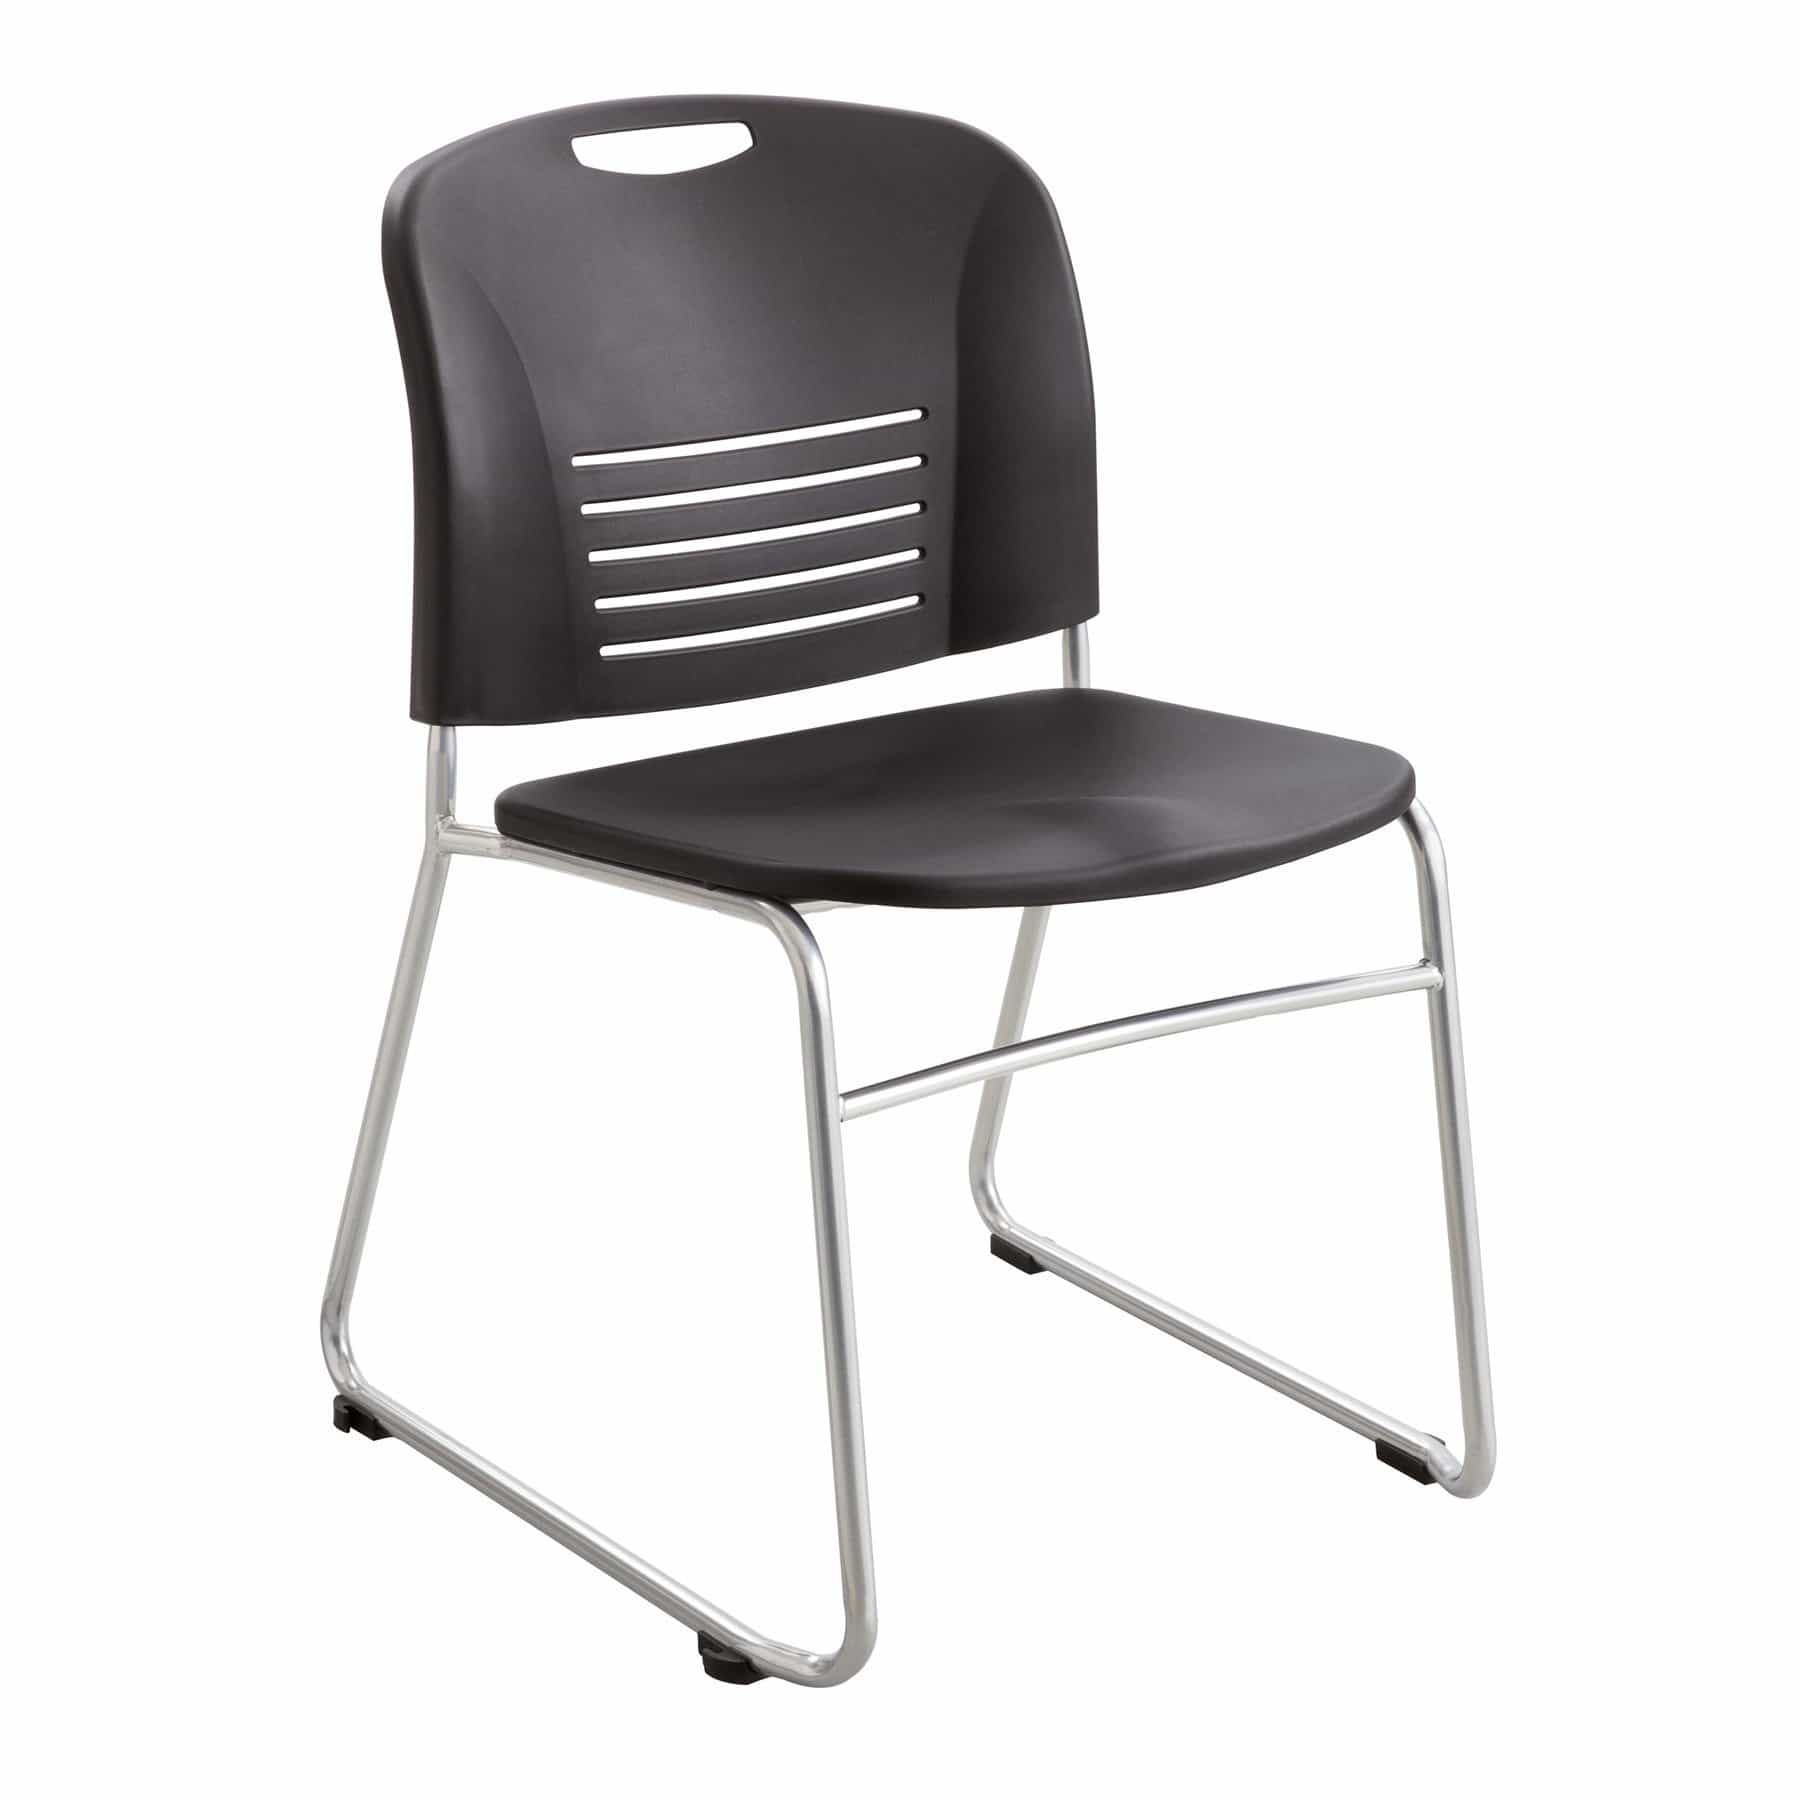 bedinhome - 4292BL Black Vy Sled Base plastic steel powder coat frame stackable chair (Qty. 2) - Safco - Stack/Nesting Seating